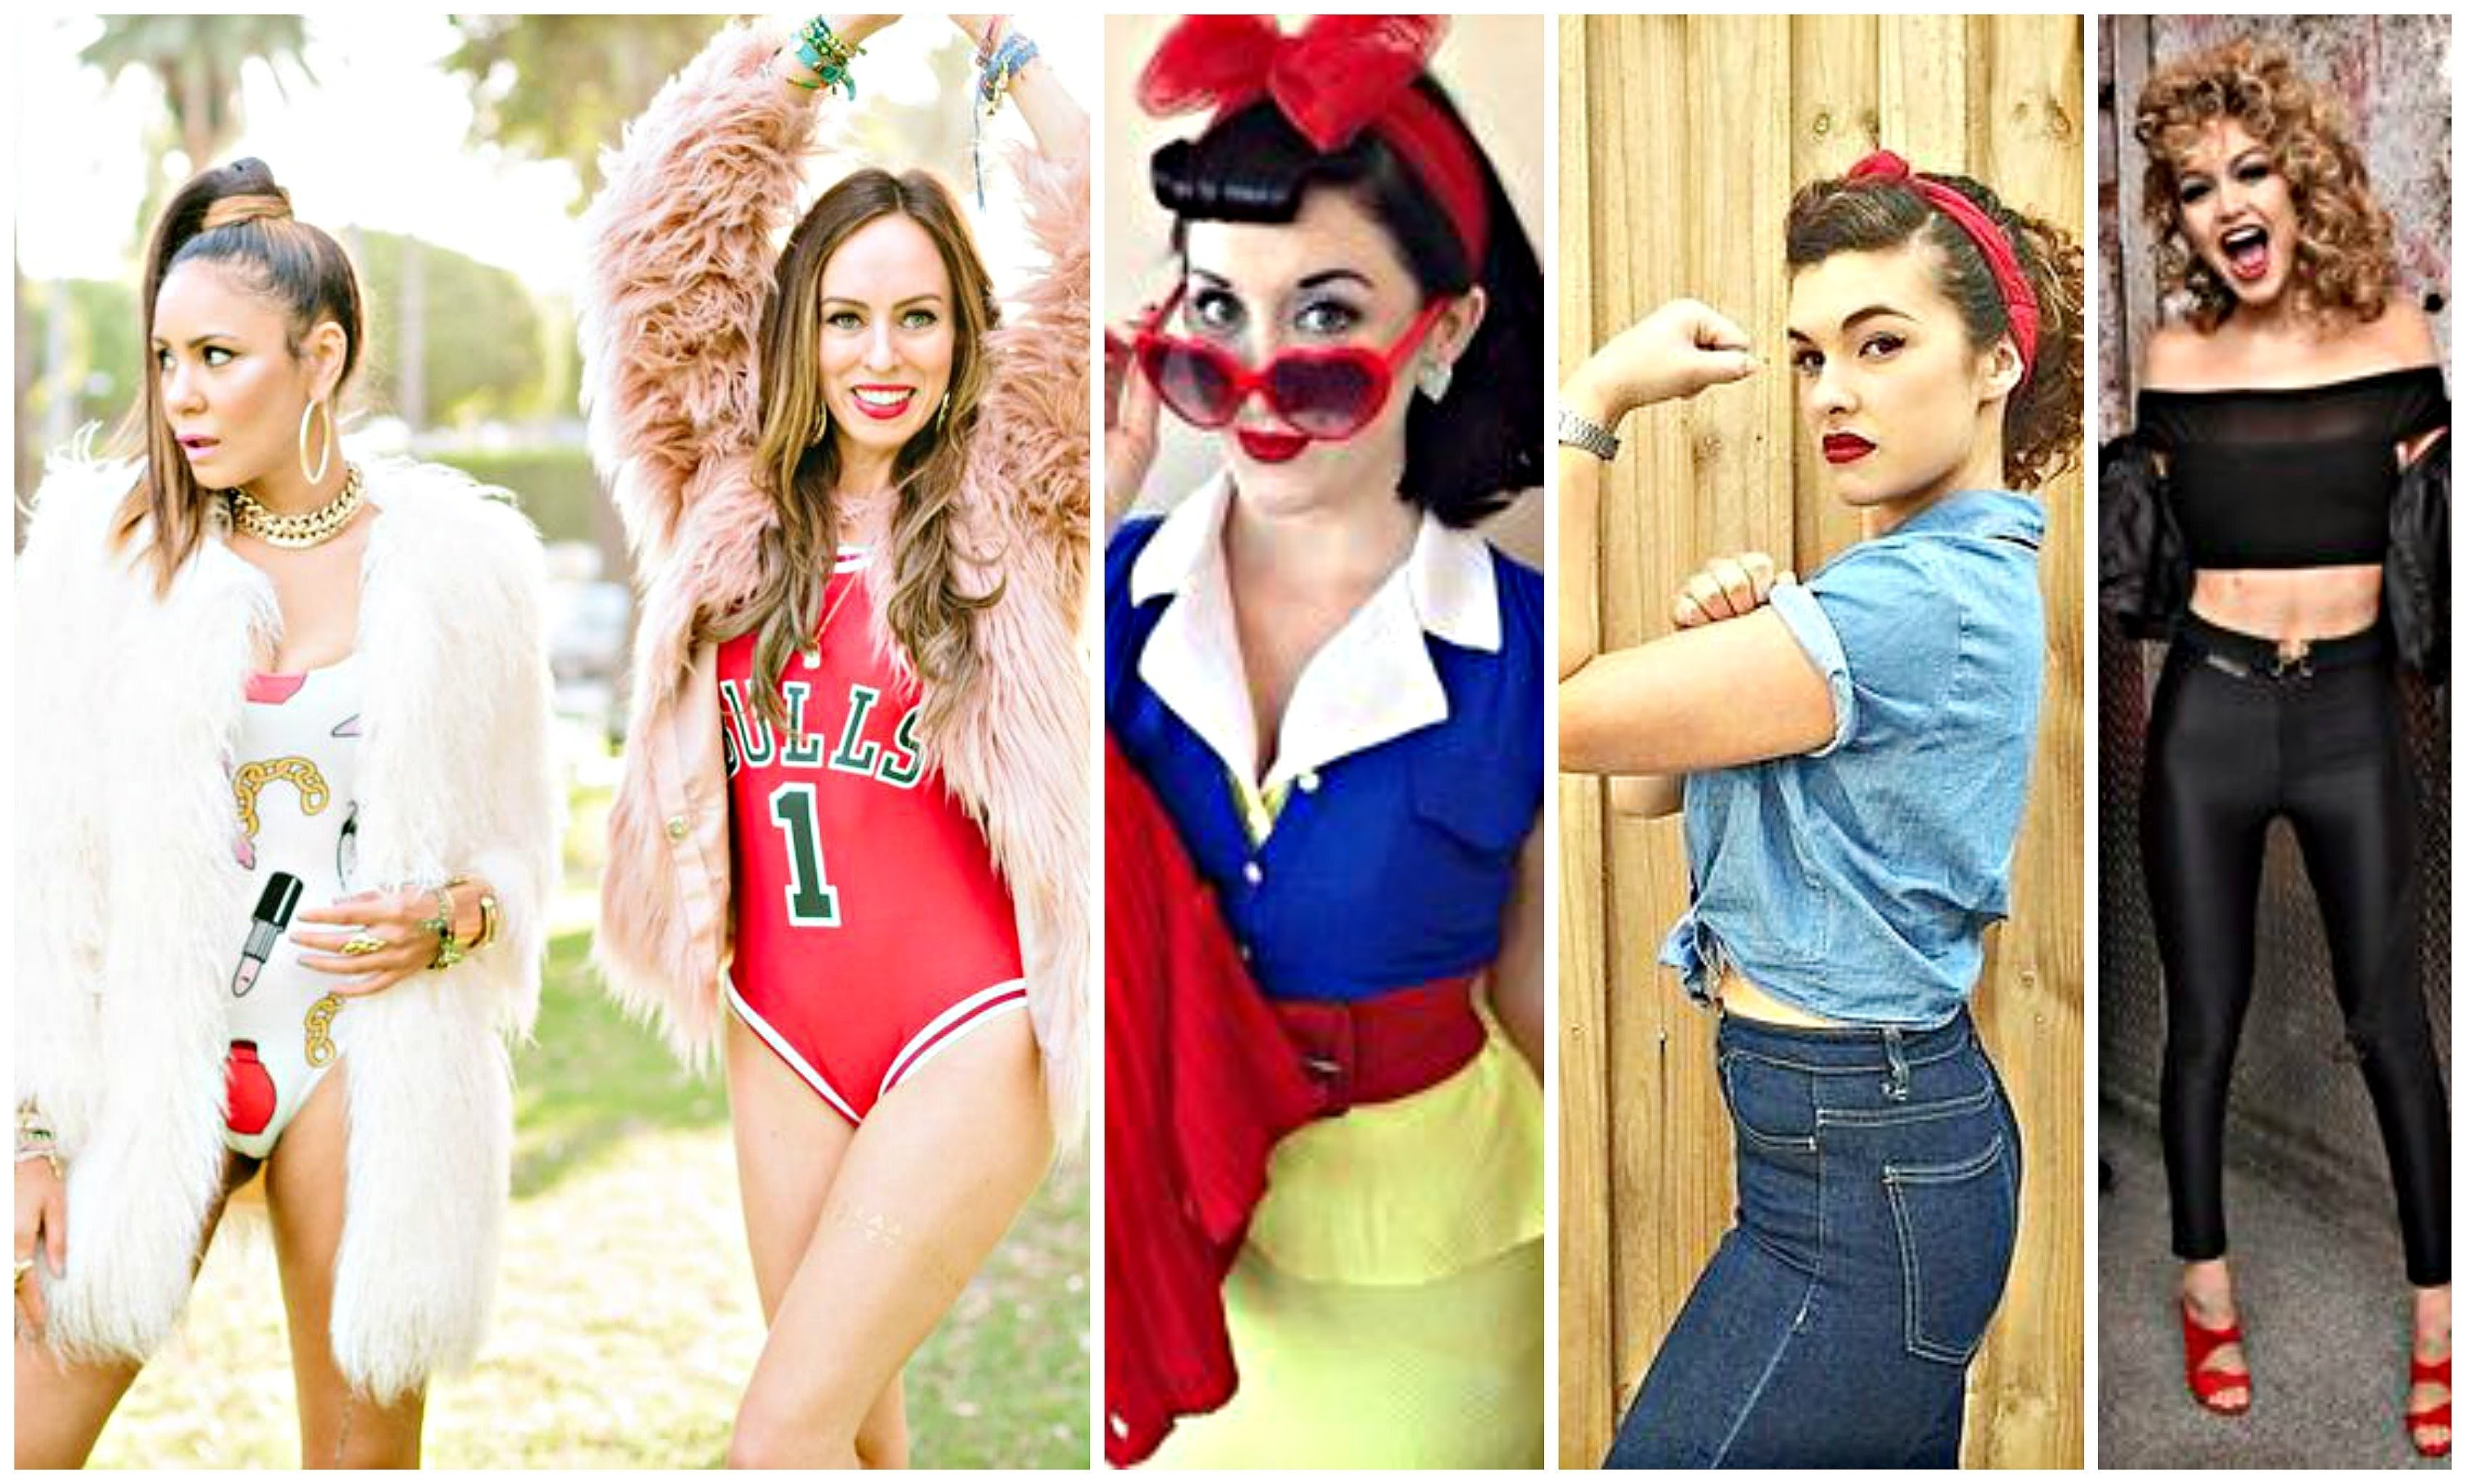 10 Fashionable Best Halloween Costume Ideas Ever top halloween costume ideas for women youtube 18 2020